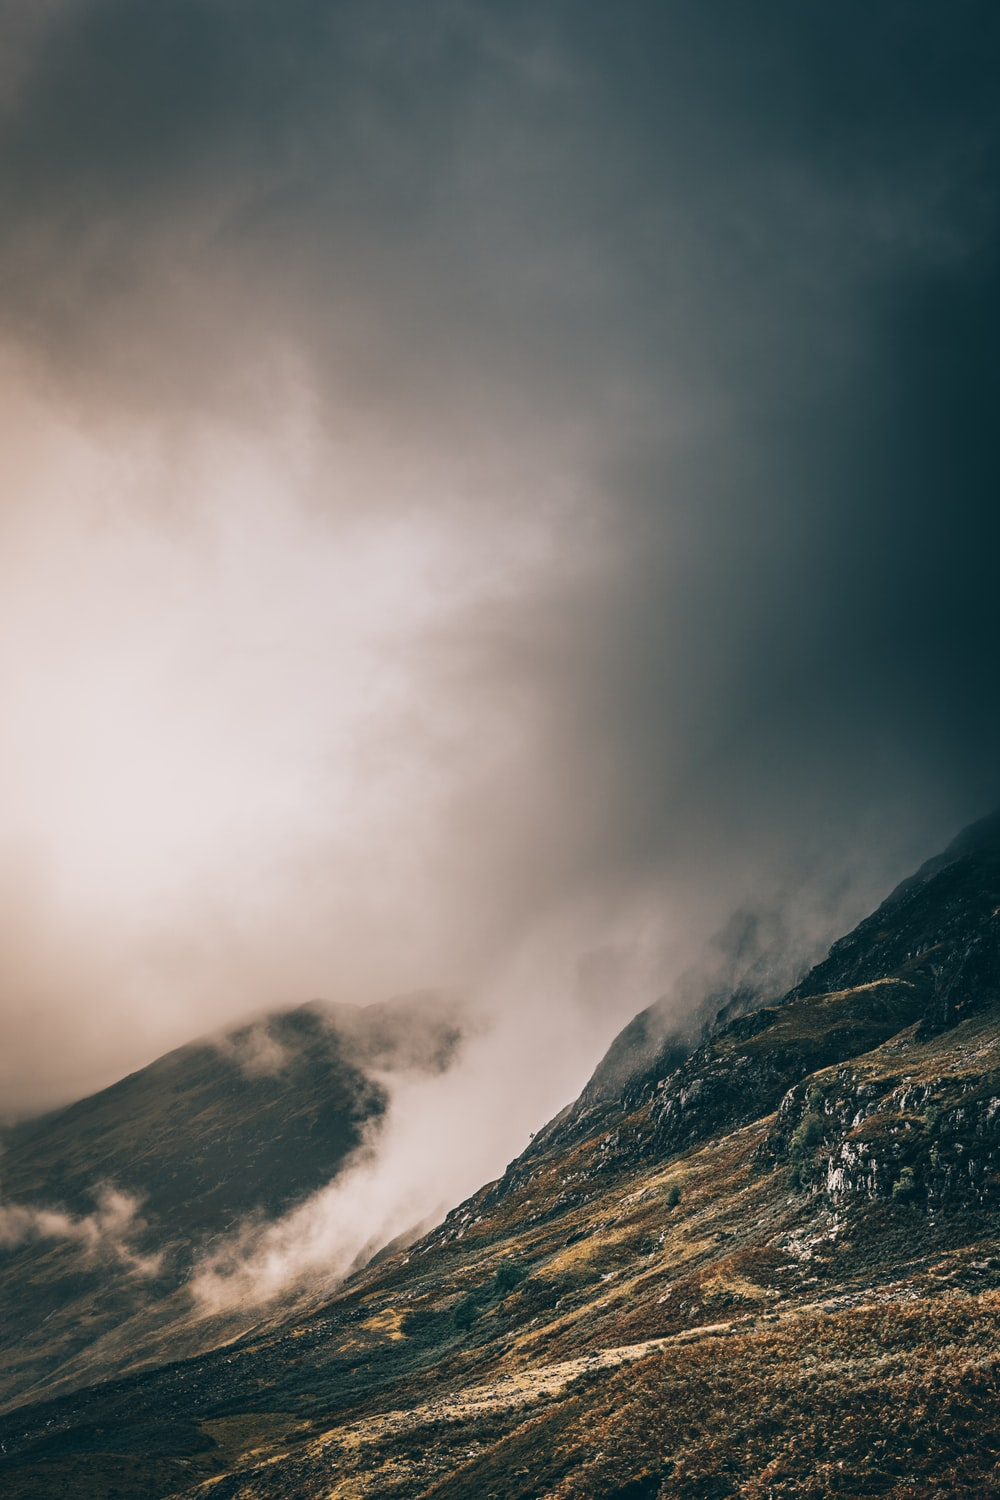 landscape photo of mountain covered with fog